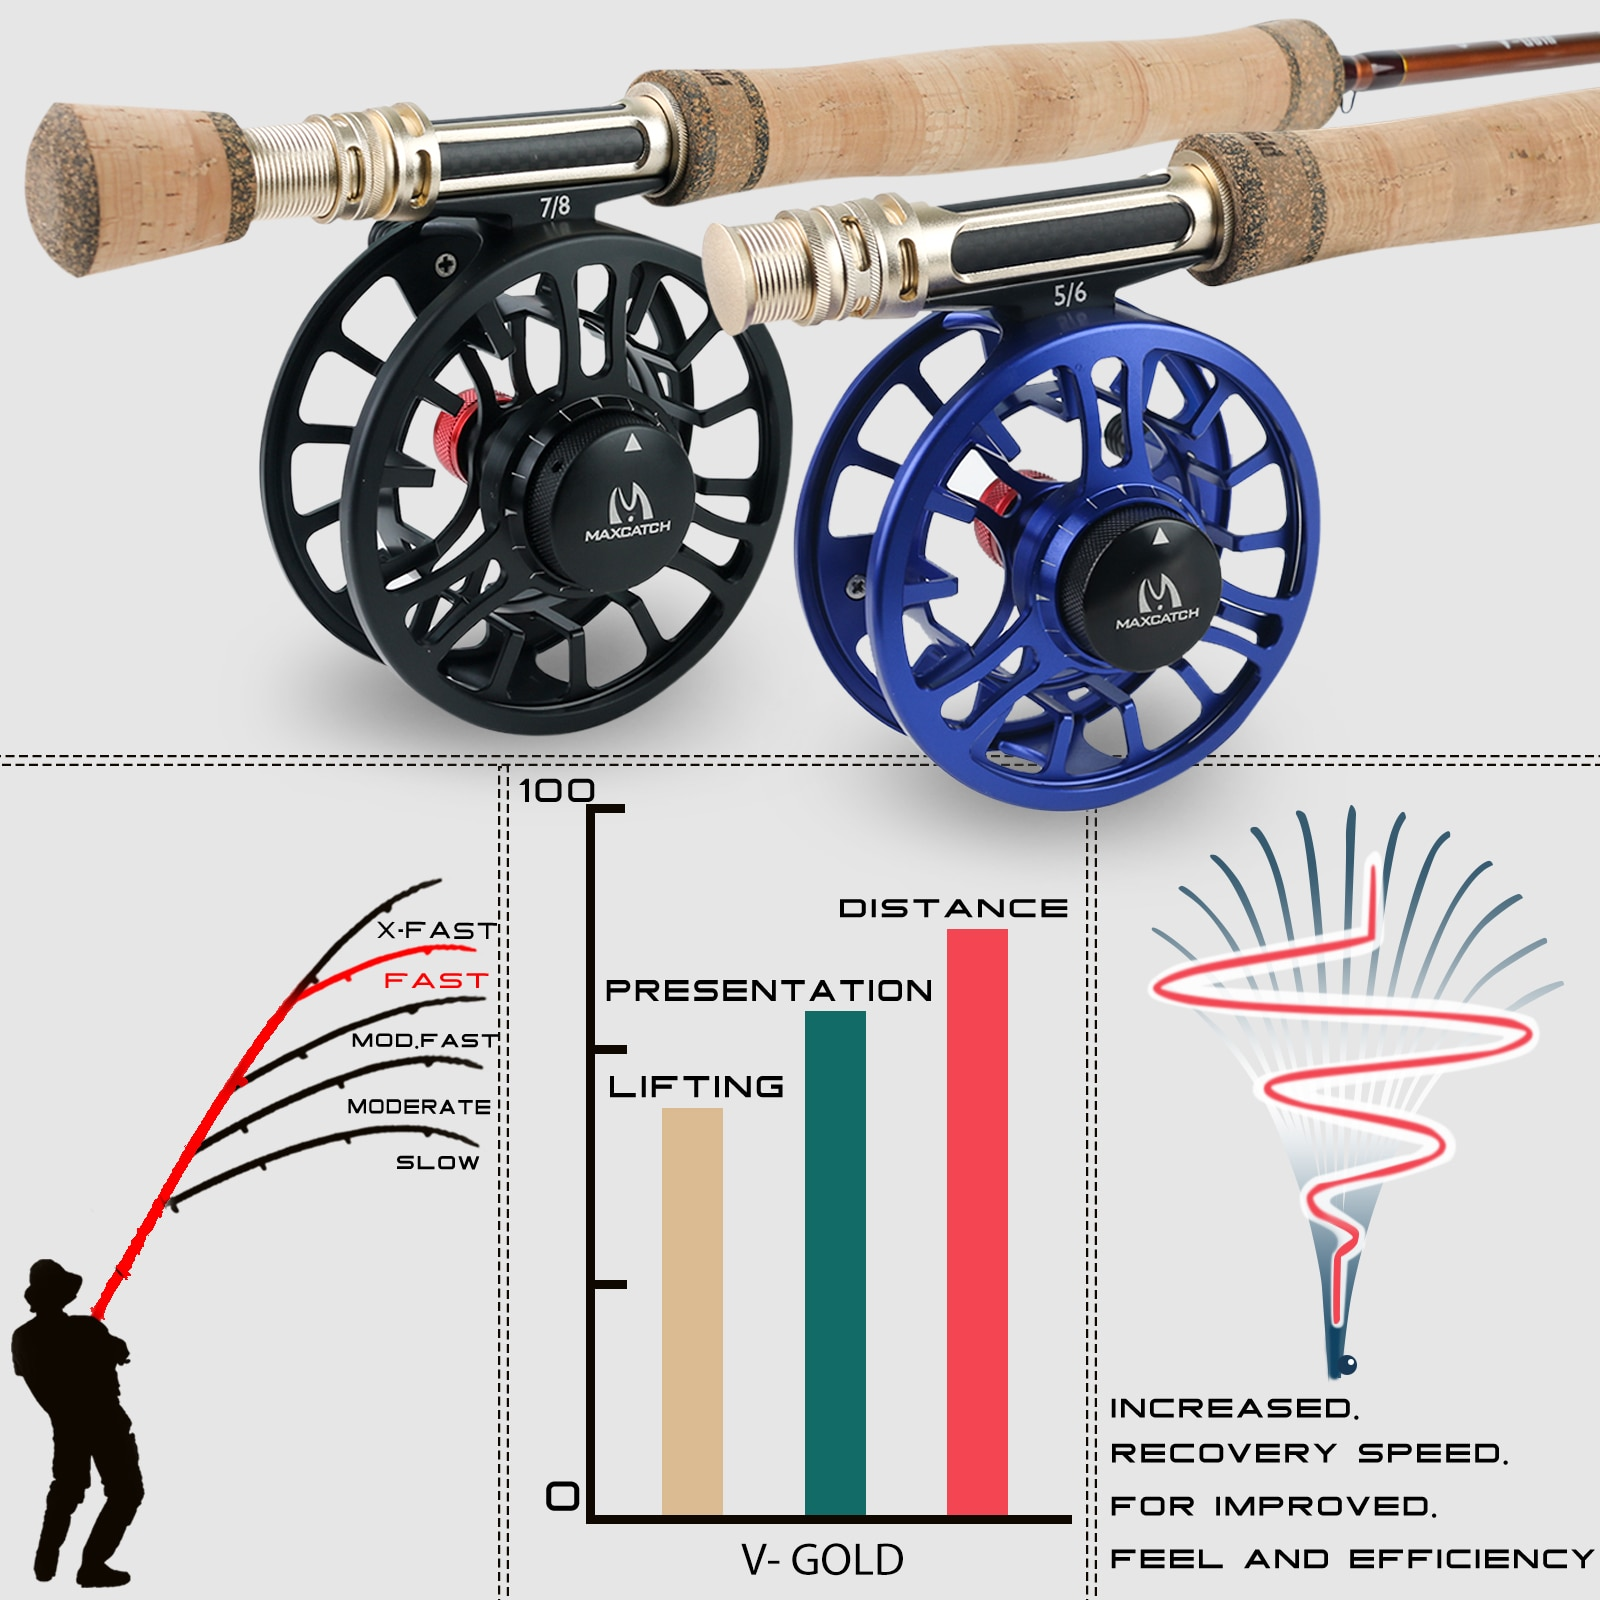 Maximumcatch V-GOLD Fly Fishing Rod with Pacbay Minima Ring 40T SK Carbon 9FT 4-8WT Fast Action Fly Rod with Cordura Tube enlarge